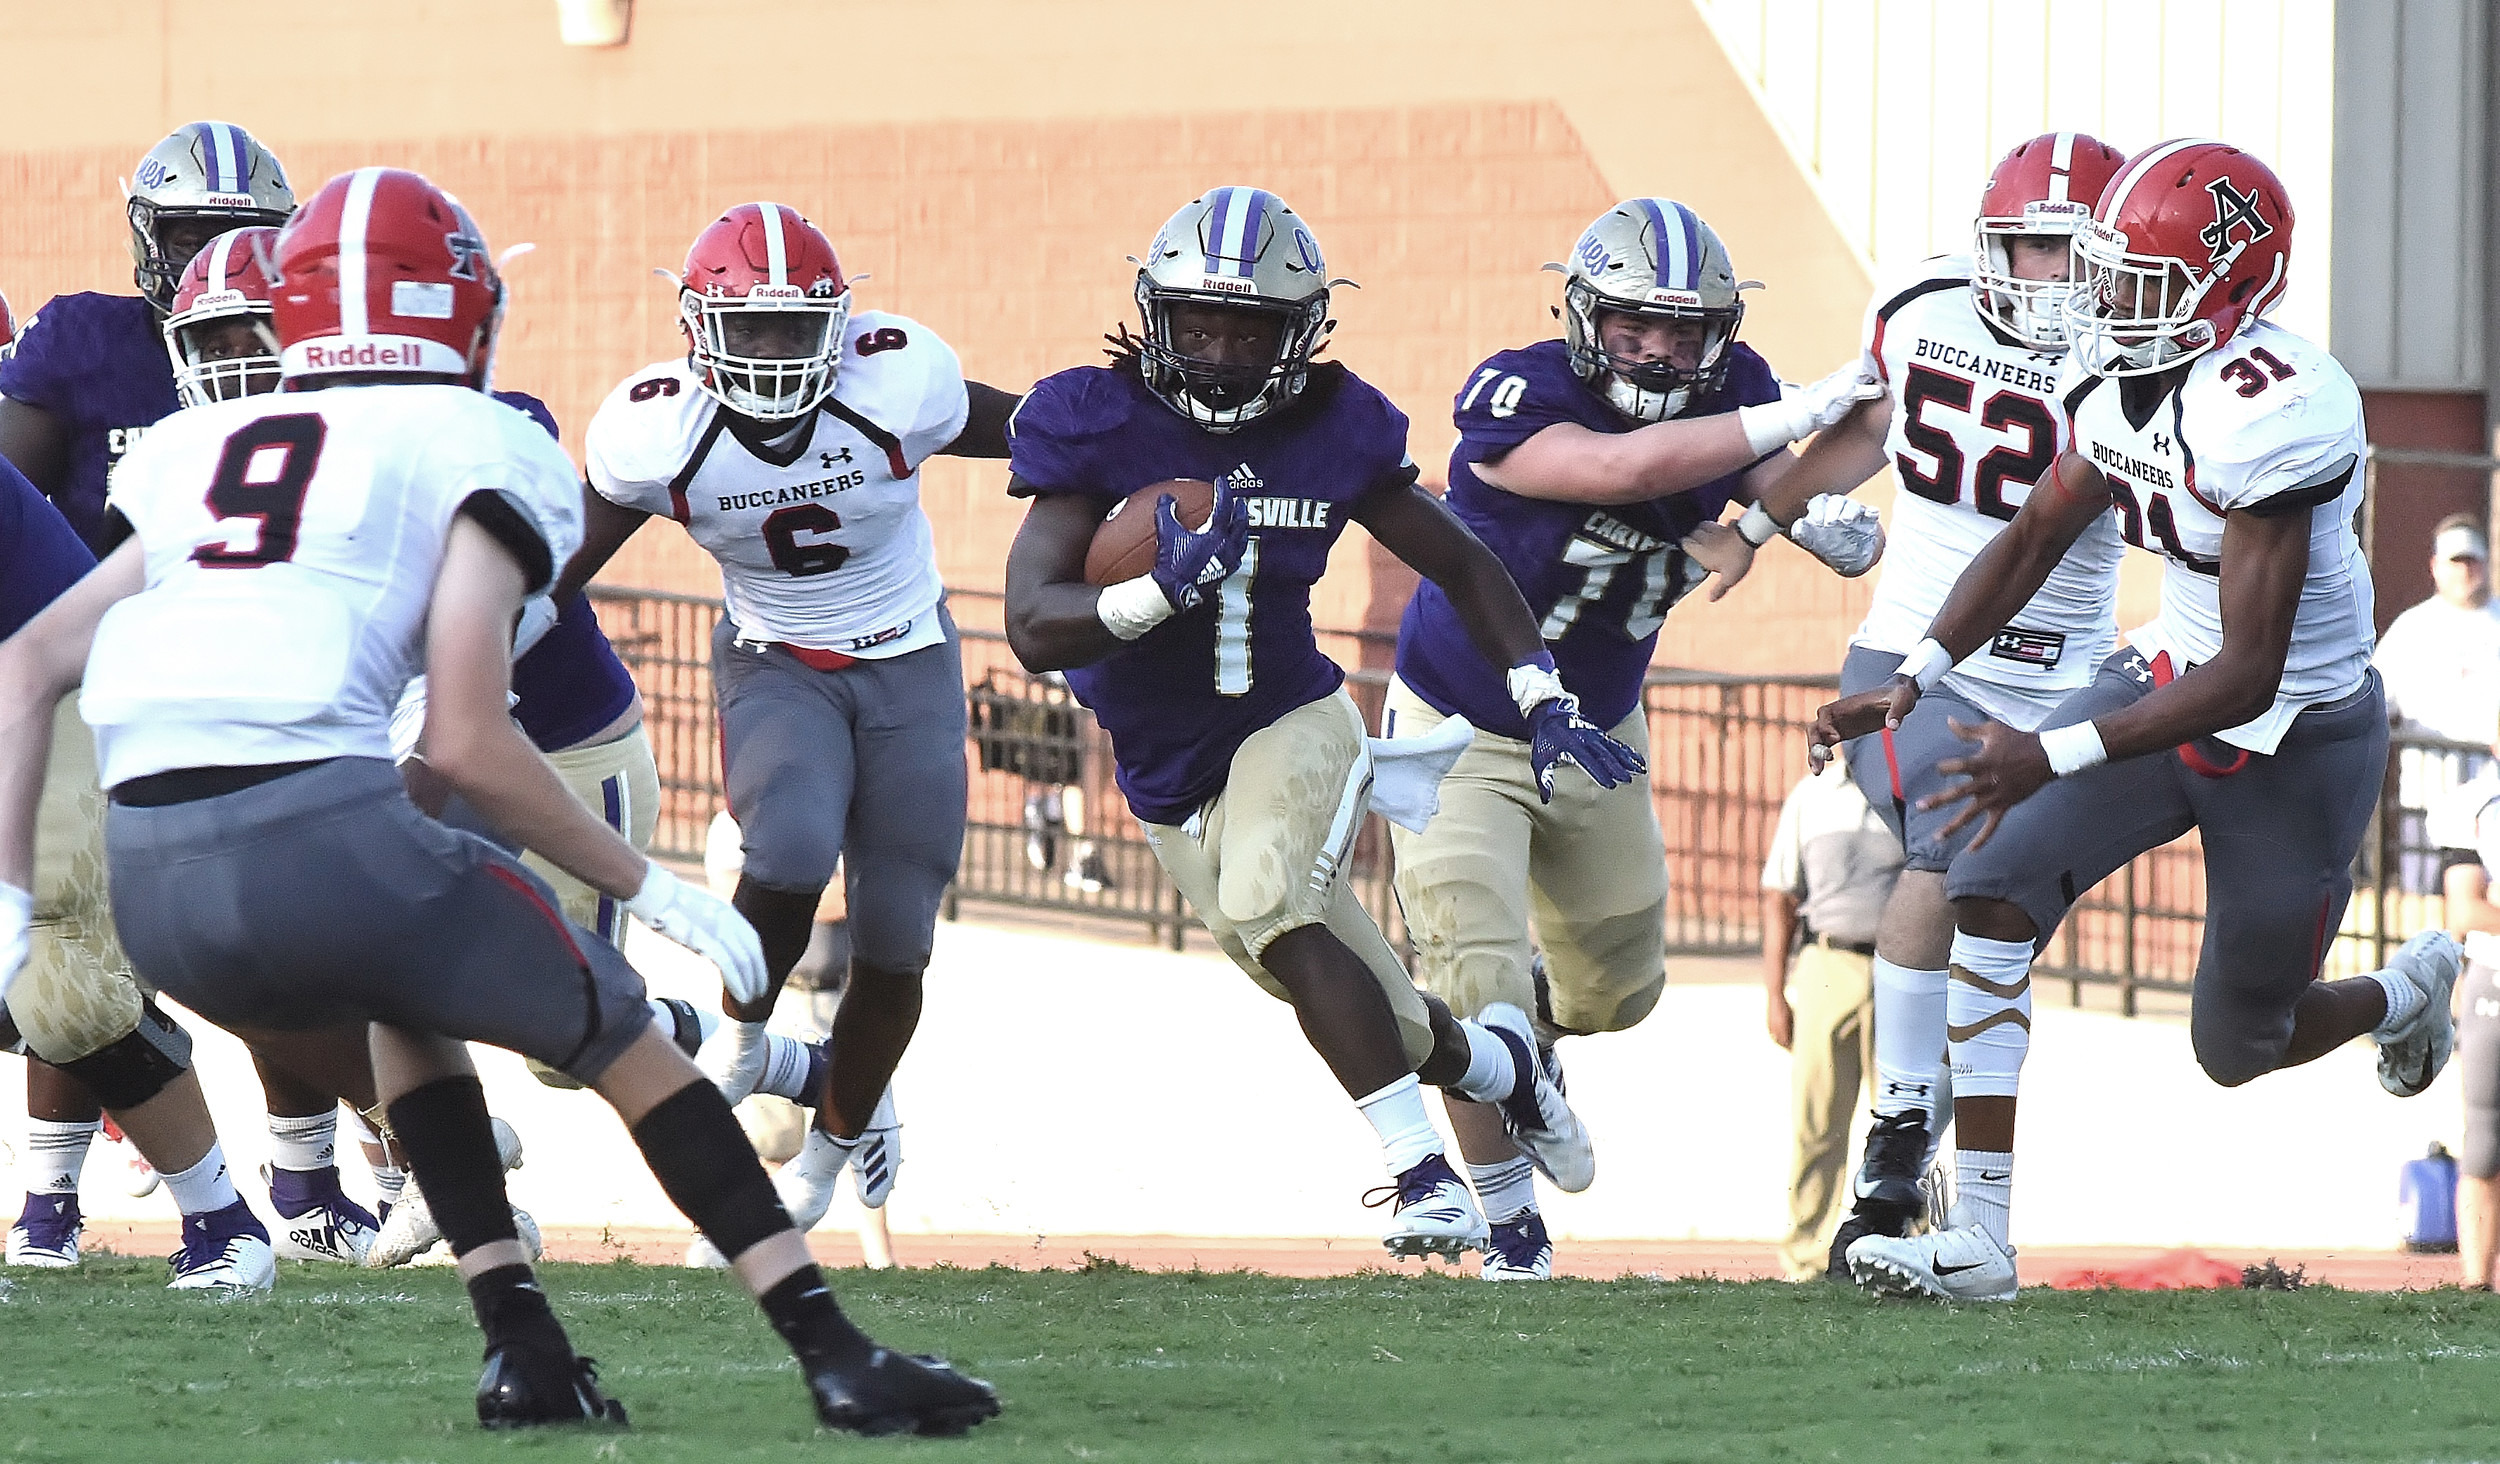 Cartersville's Marcus Gary cuts through the Allatoona defense during Friday's game at Weinman Stadium. Gary finished with 19 carries for 144 yards and one touchdown, and he added three receptions for 94 yards and a touchdown.